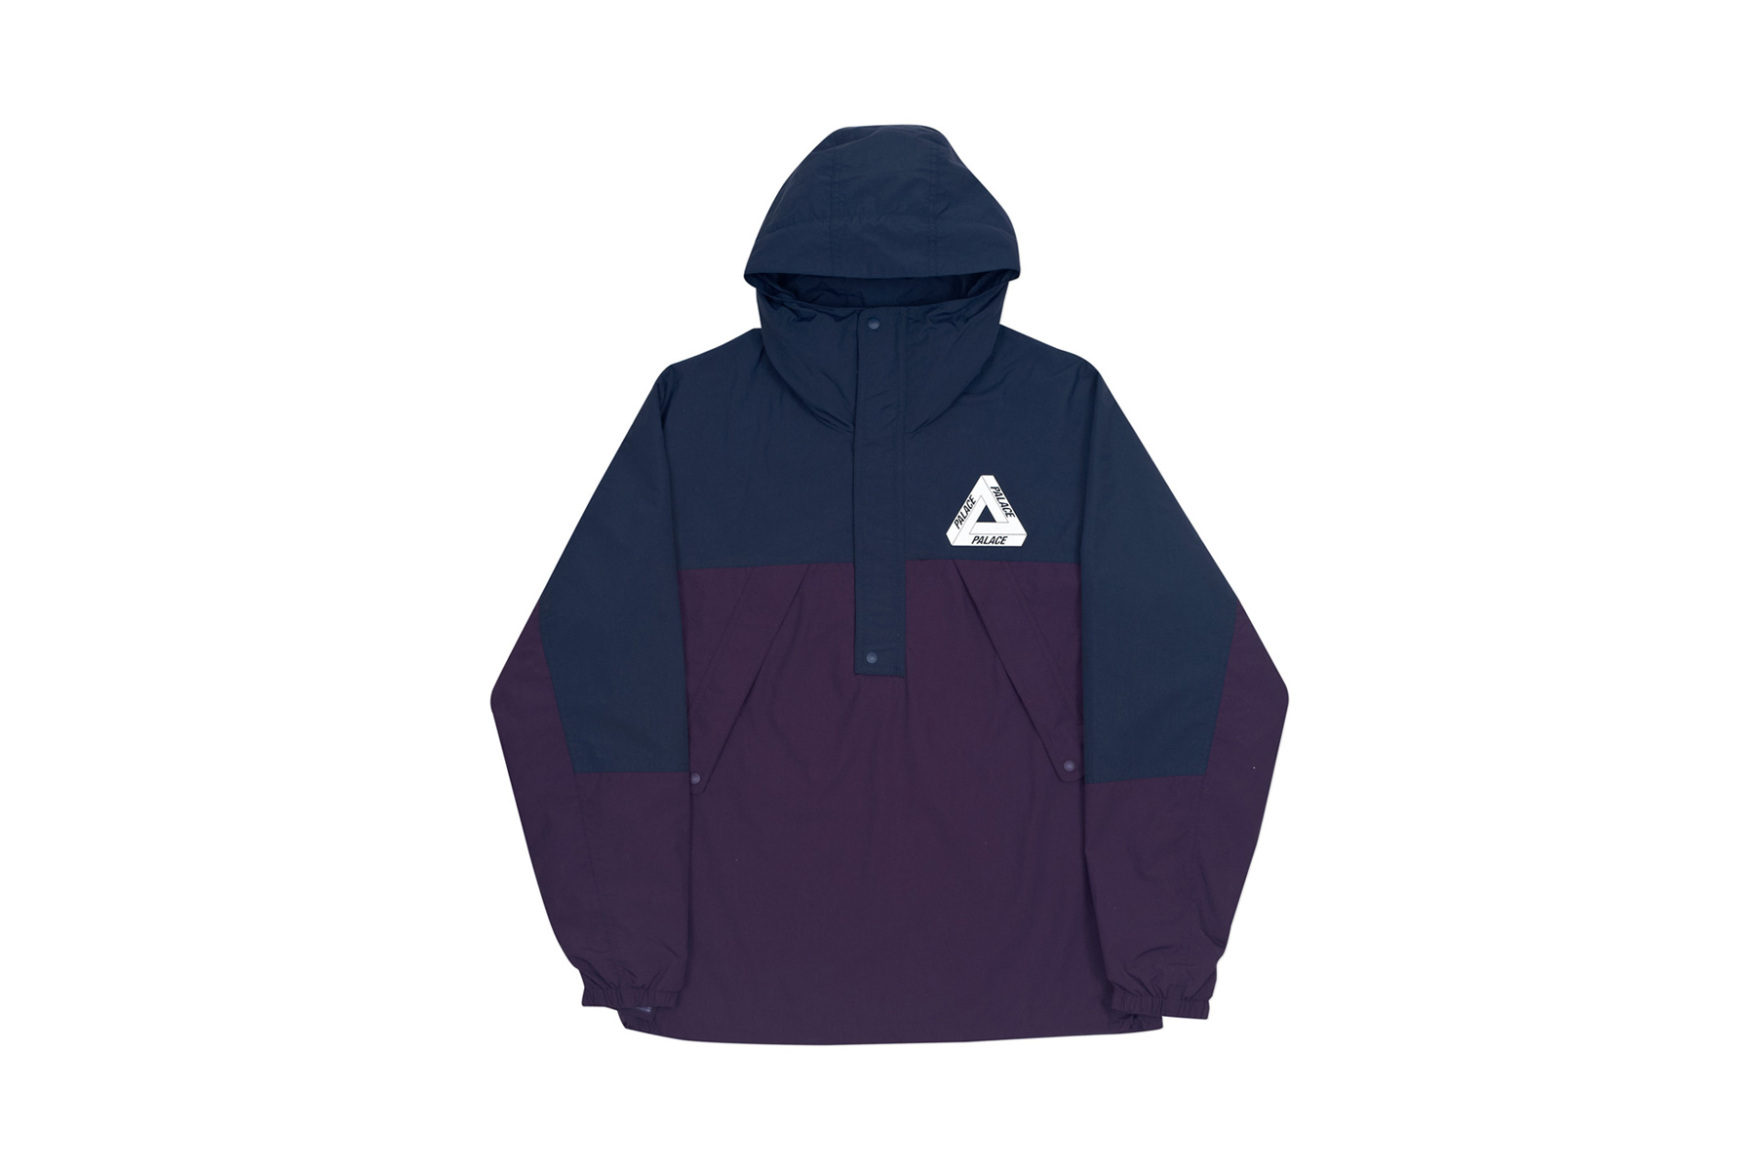 palace-2016-fw-collection-3